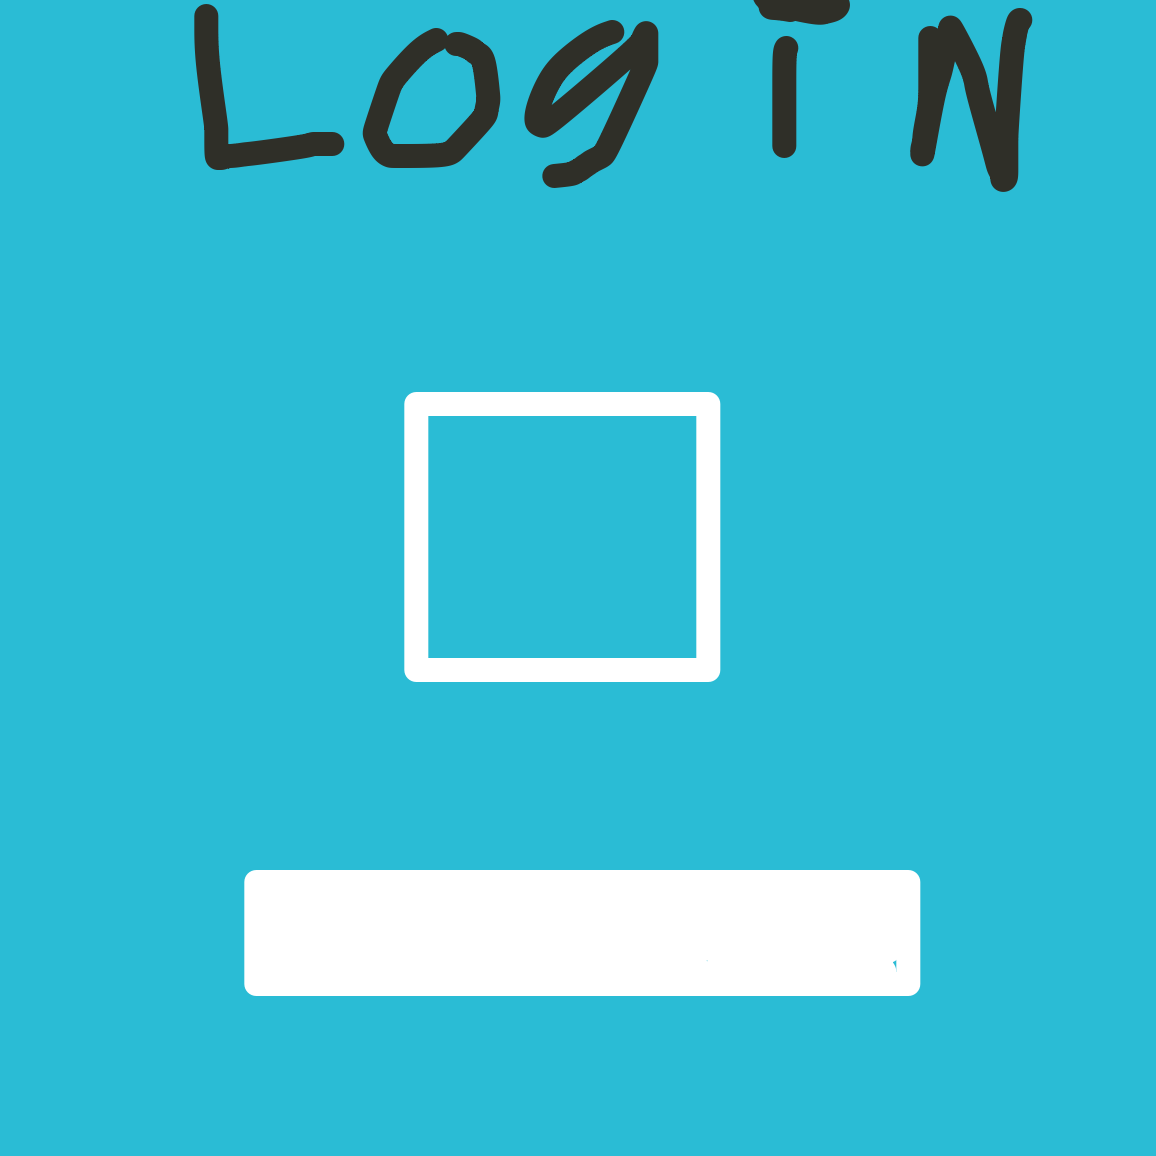 Rebooting system... Welcome back... Login required... - Online Drawing Game Comic Strip Panel by Nonexistent